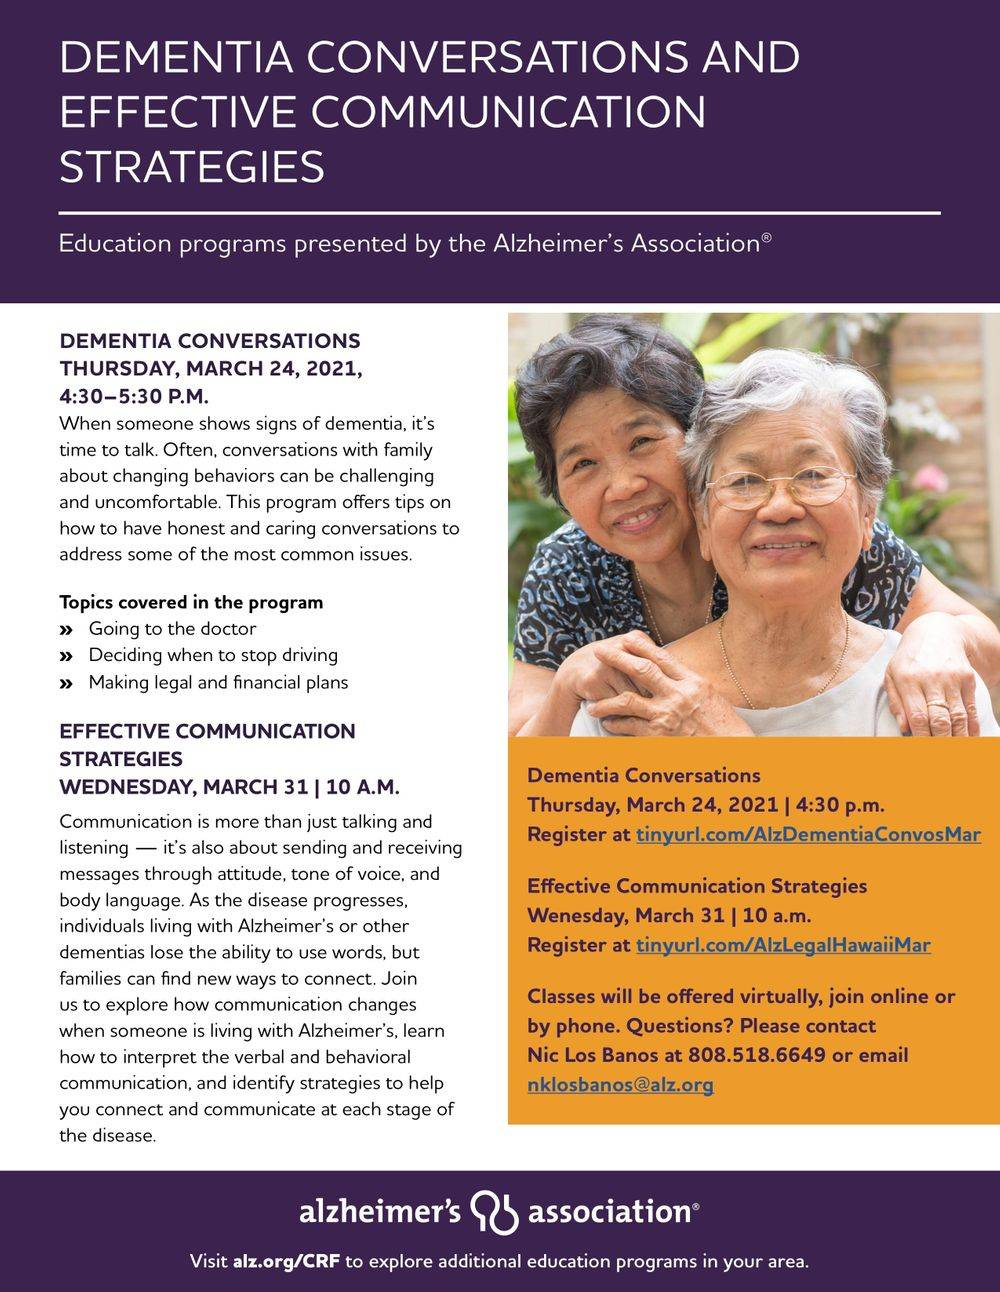 Empower and Protect Persons with Dementia